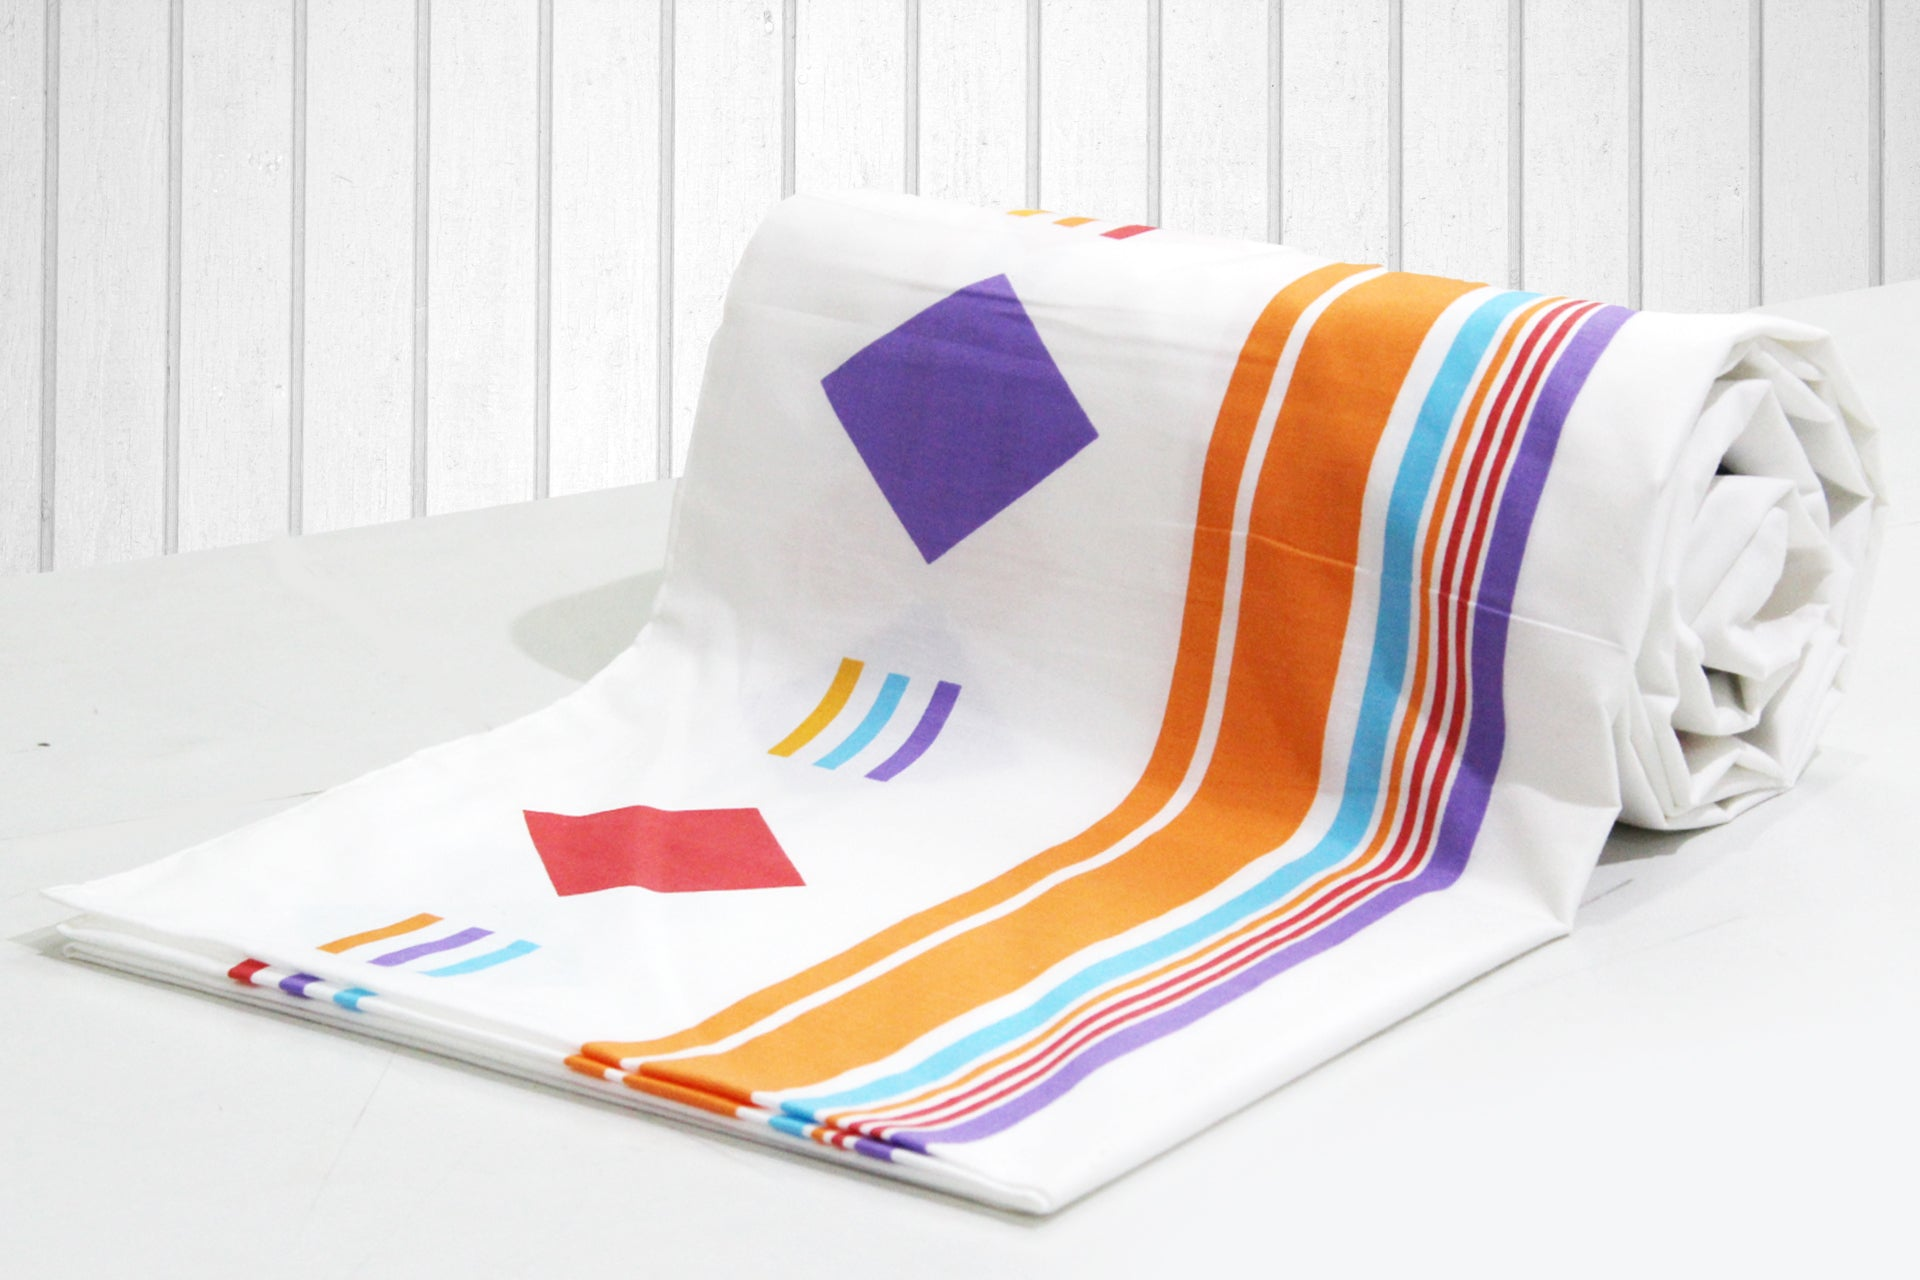 AURAVE Orange Stripes Geometrical Squares 1 Piece Cotton Duvet Cover/Quilt Cover/Blanket Cover, Single Bed (with Zipper)